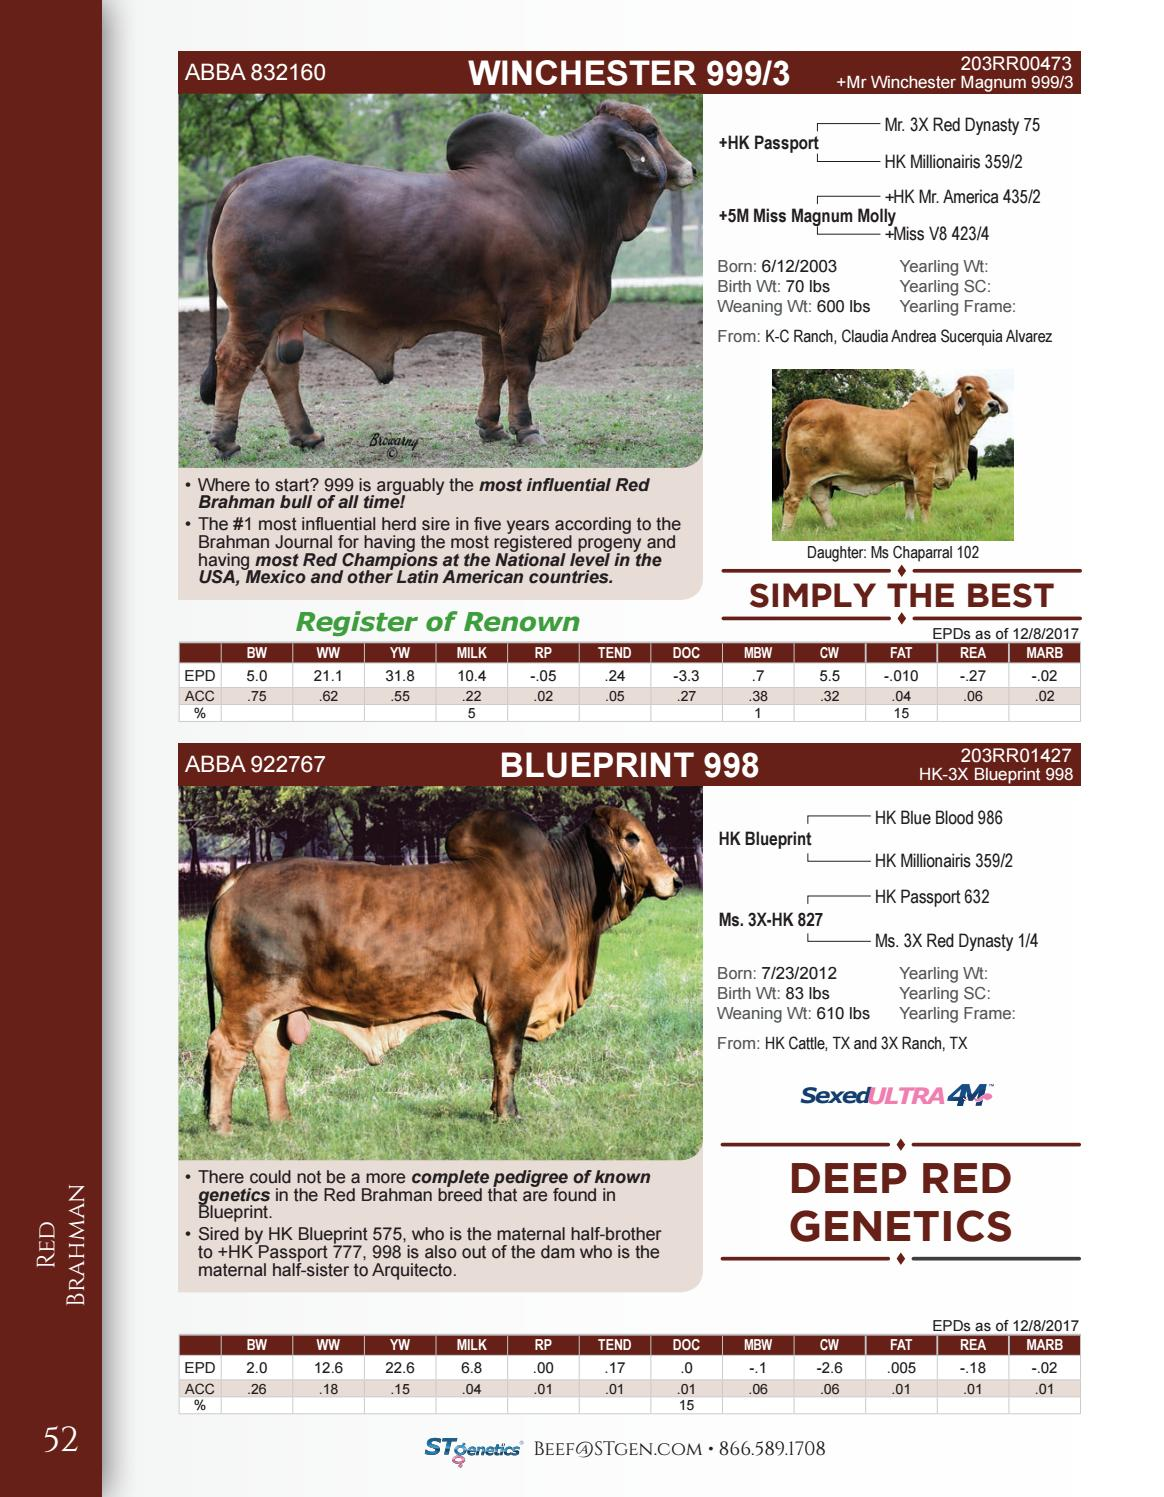 Stgenetics spring 2018 beef sire directory by stgenetics issuu malvernweather Images